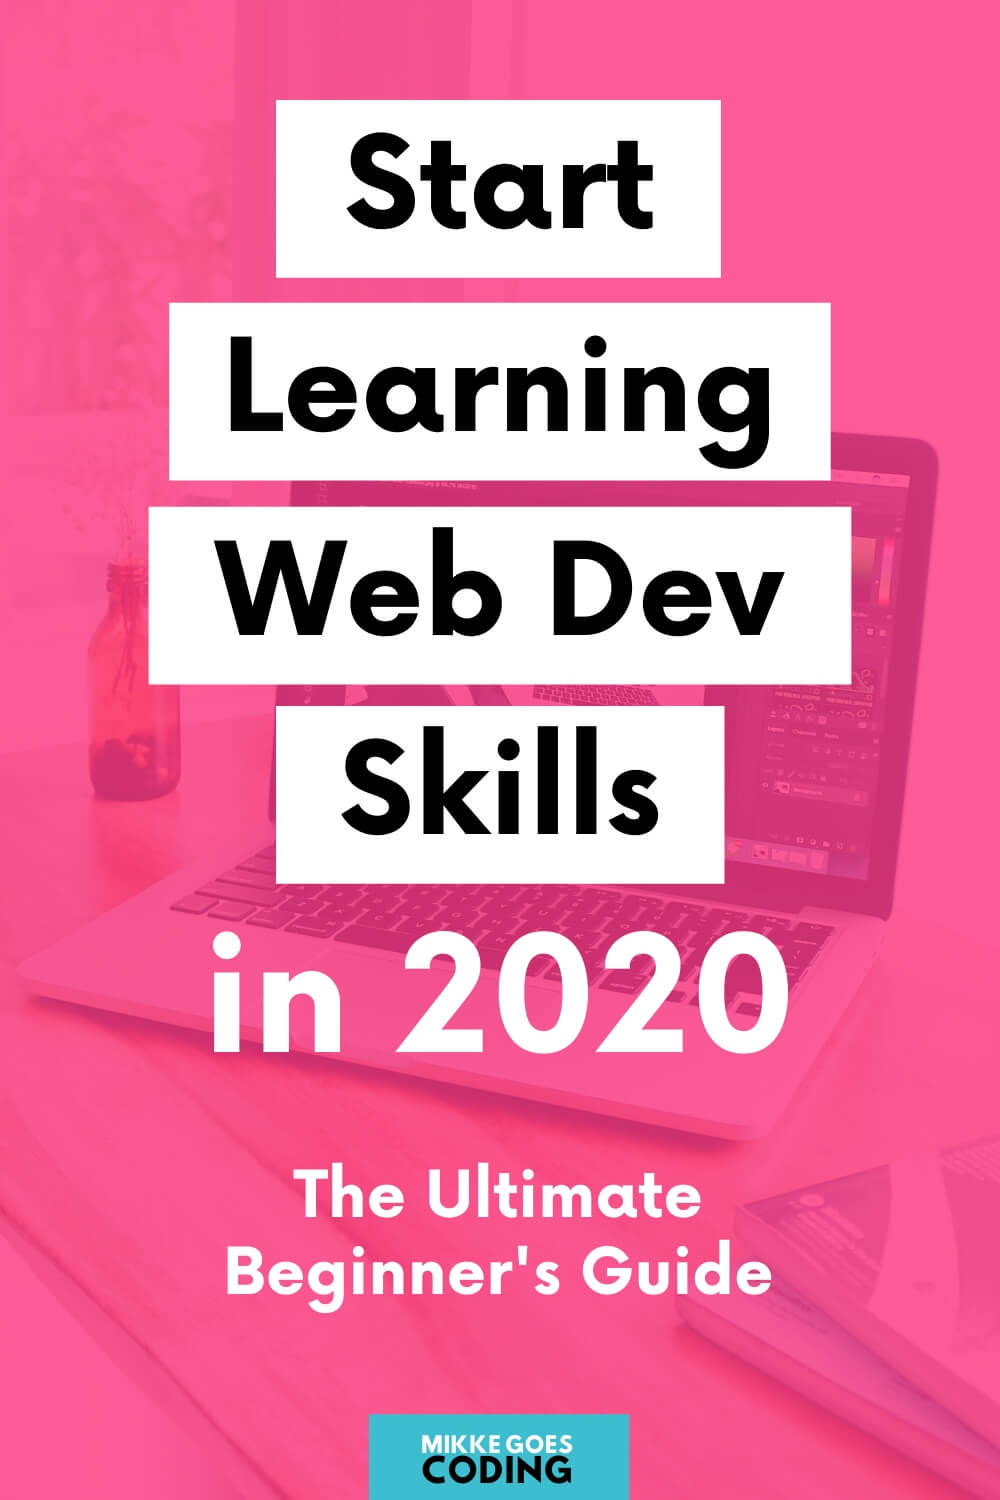 The Best Way to Learn Web Development in 2020: The Ultimate Guide